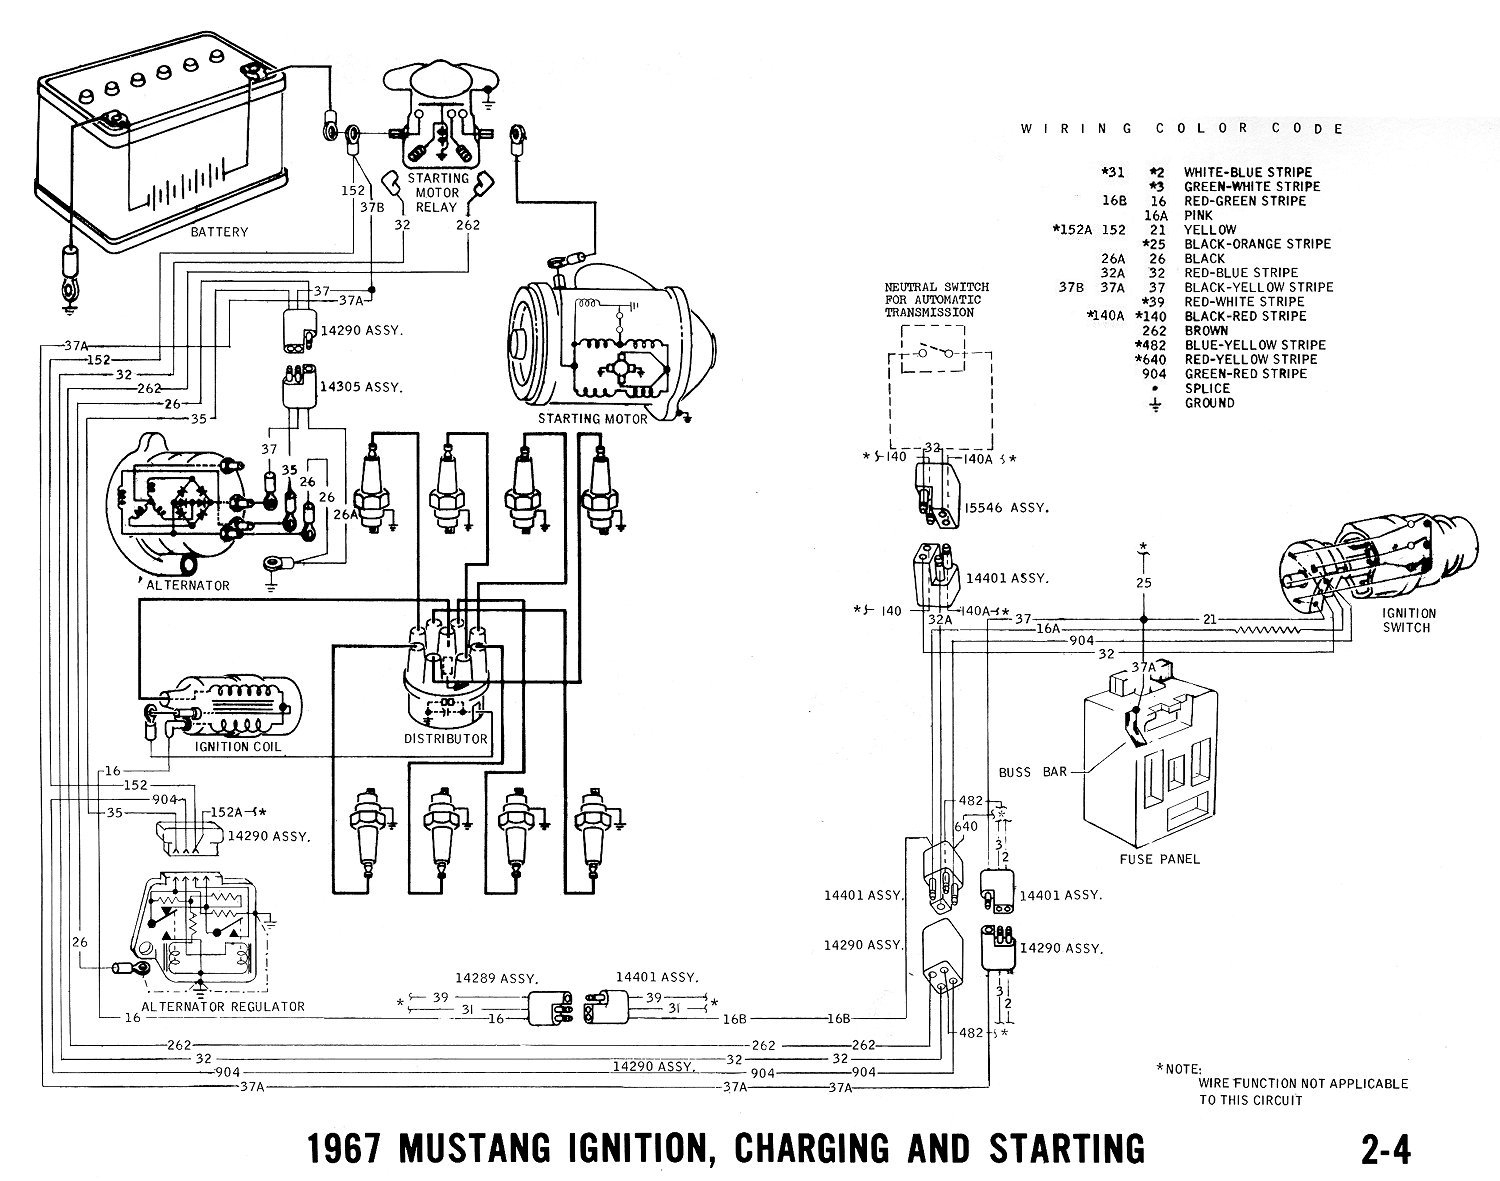 1967 Mustang Ignition Wiring - Wiring Diagrams Hubs - 1967 Mustang Wiring Diagram